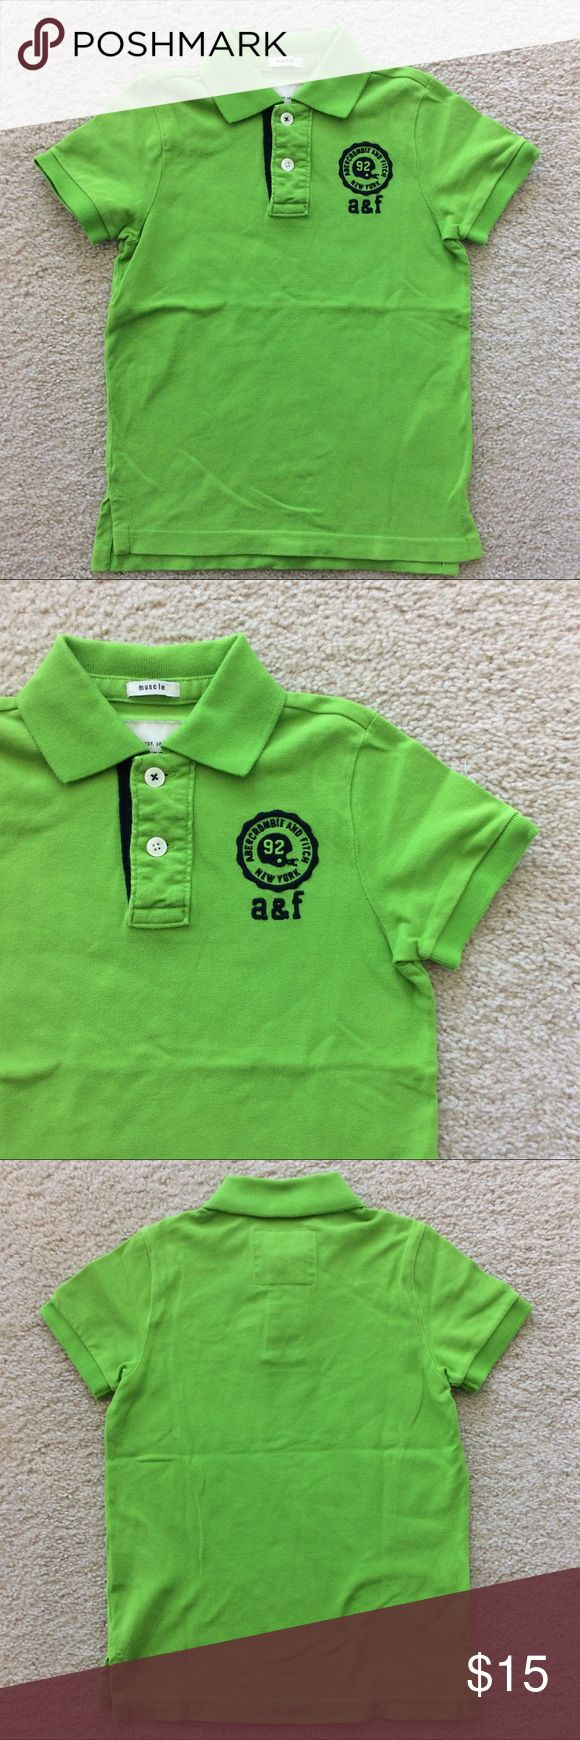 👫Abercrombie Kids Pique Polo Muscle Shirt Abercrombie Kids Pique Polo Muscle Shirt. Super cute green apple color with navy embroidery. 100% cotton. Size Boys M. Excellent condition. abercrombie kids Shirts & Tops Polos